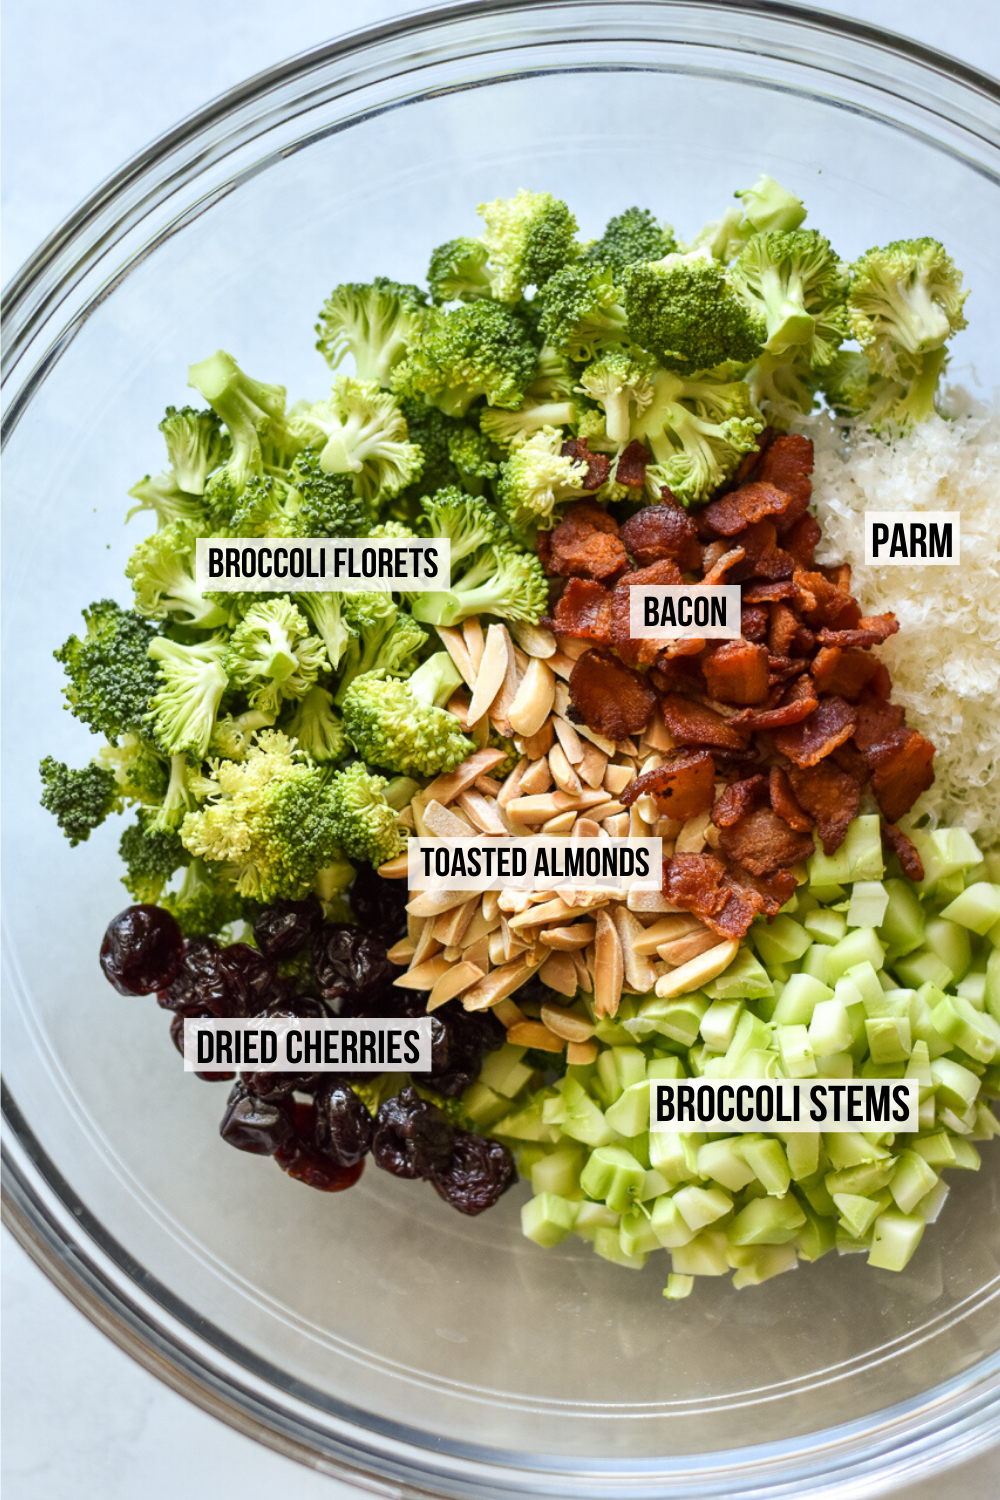 ingredients for broccoli crunch salad with labels